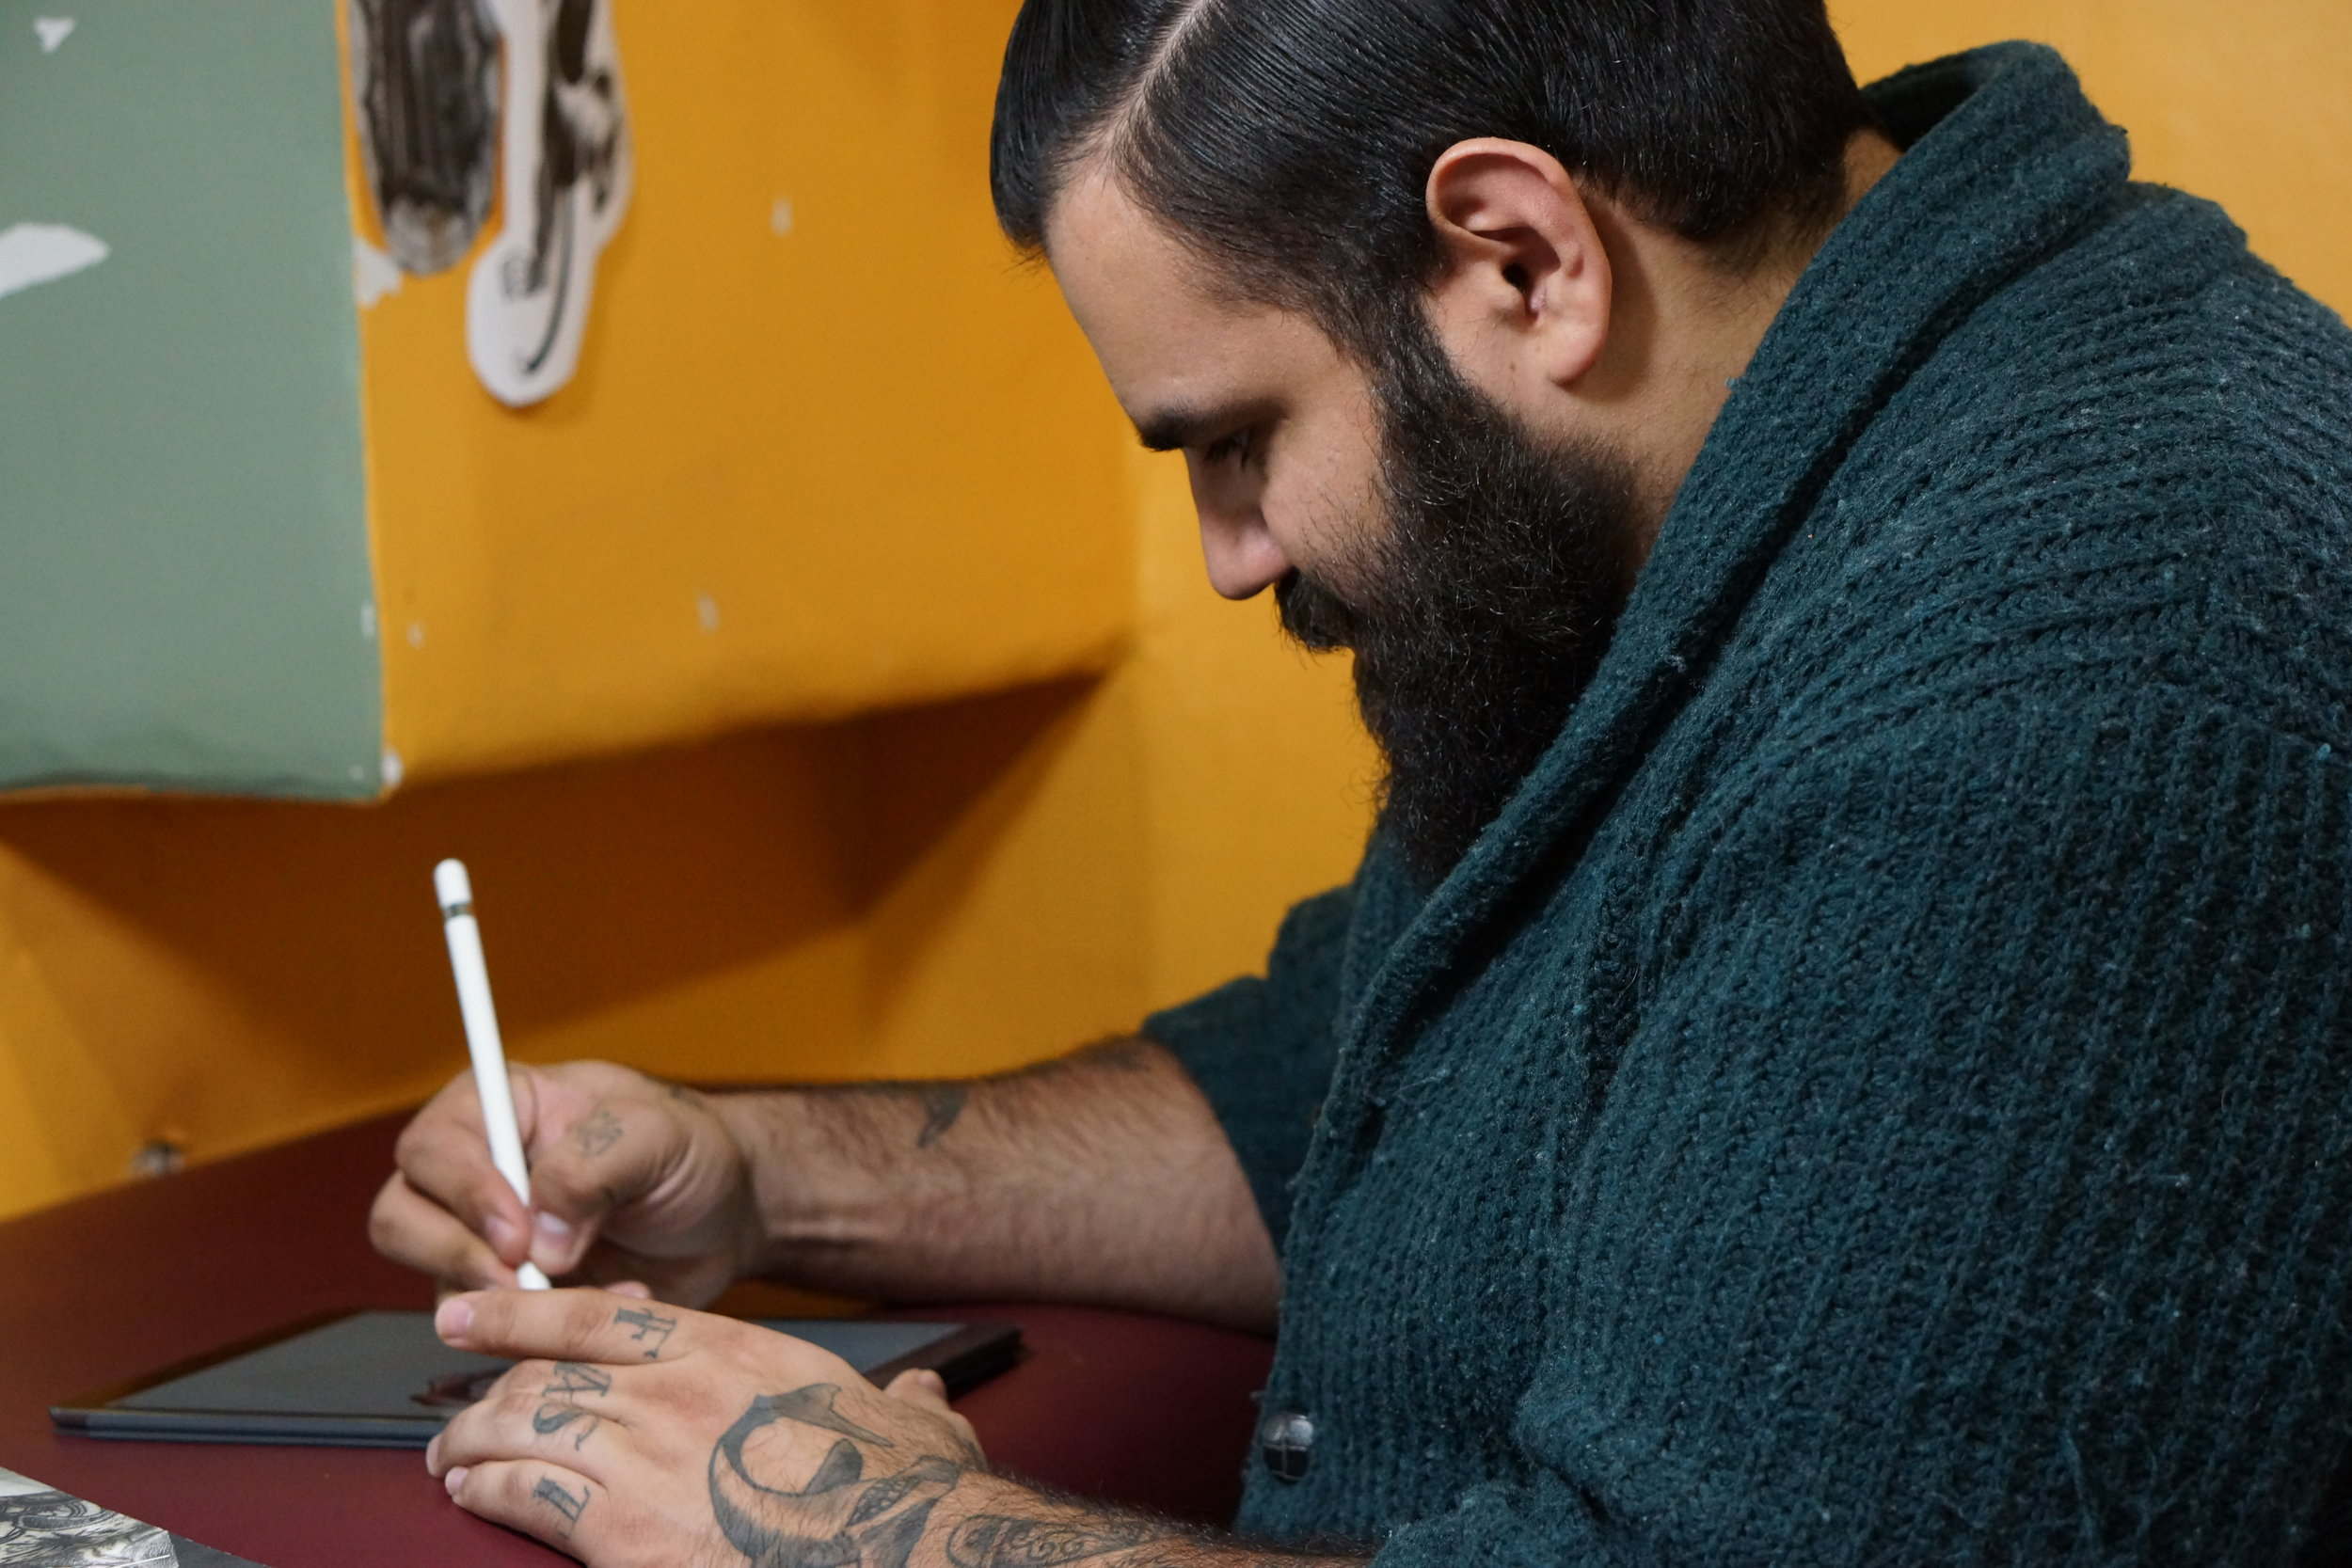 German is a traditional tattoo artist in Toronto